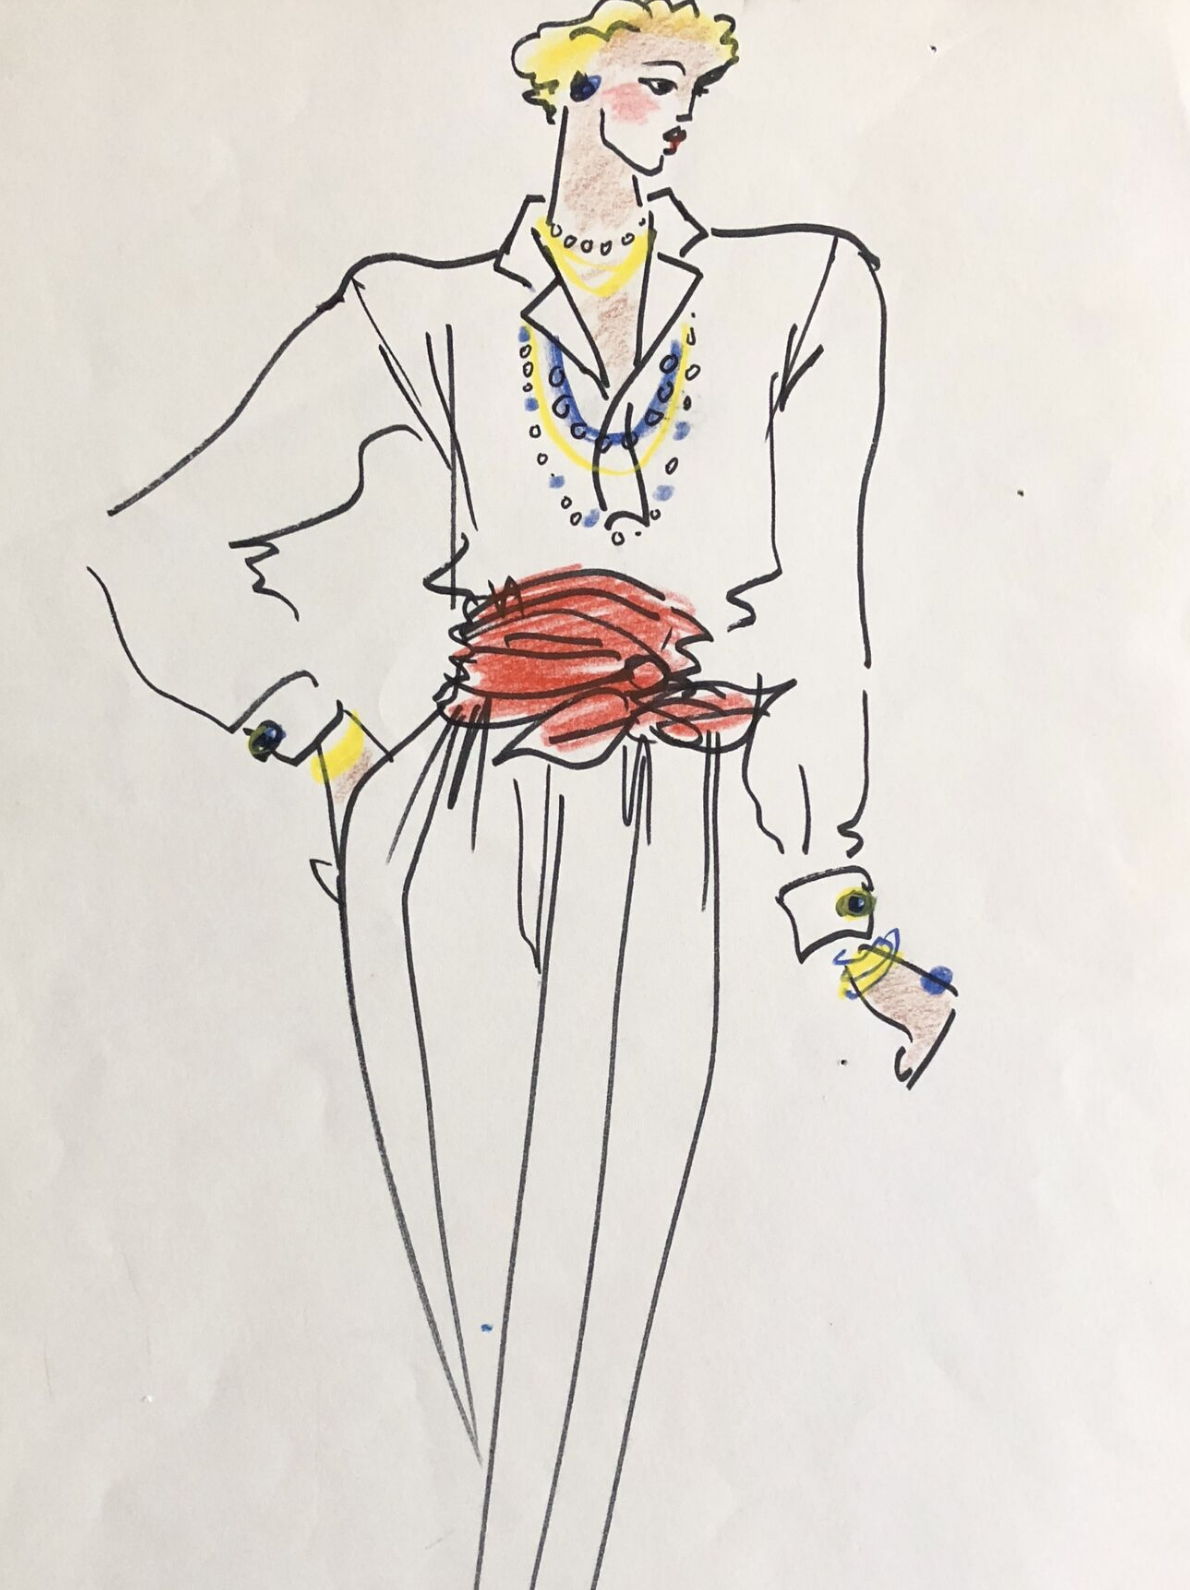 Ten Original Fashion Drawings for an Unpublished Mirabella Feature on Accessories ca. 1980s